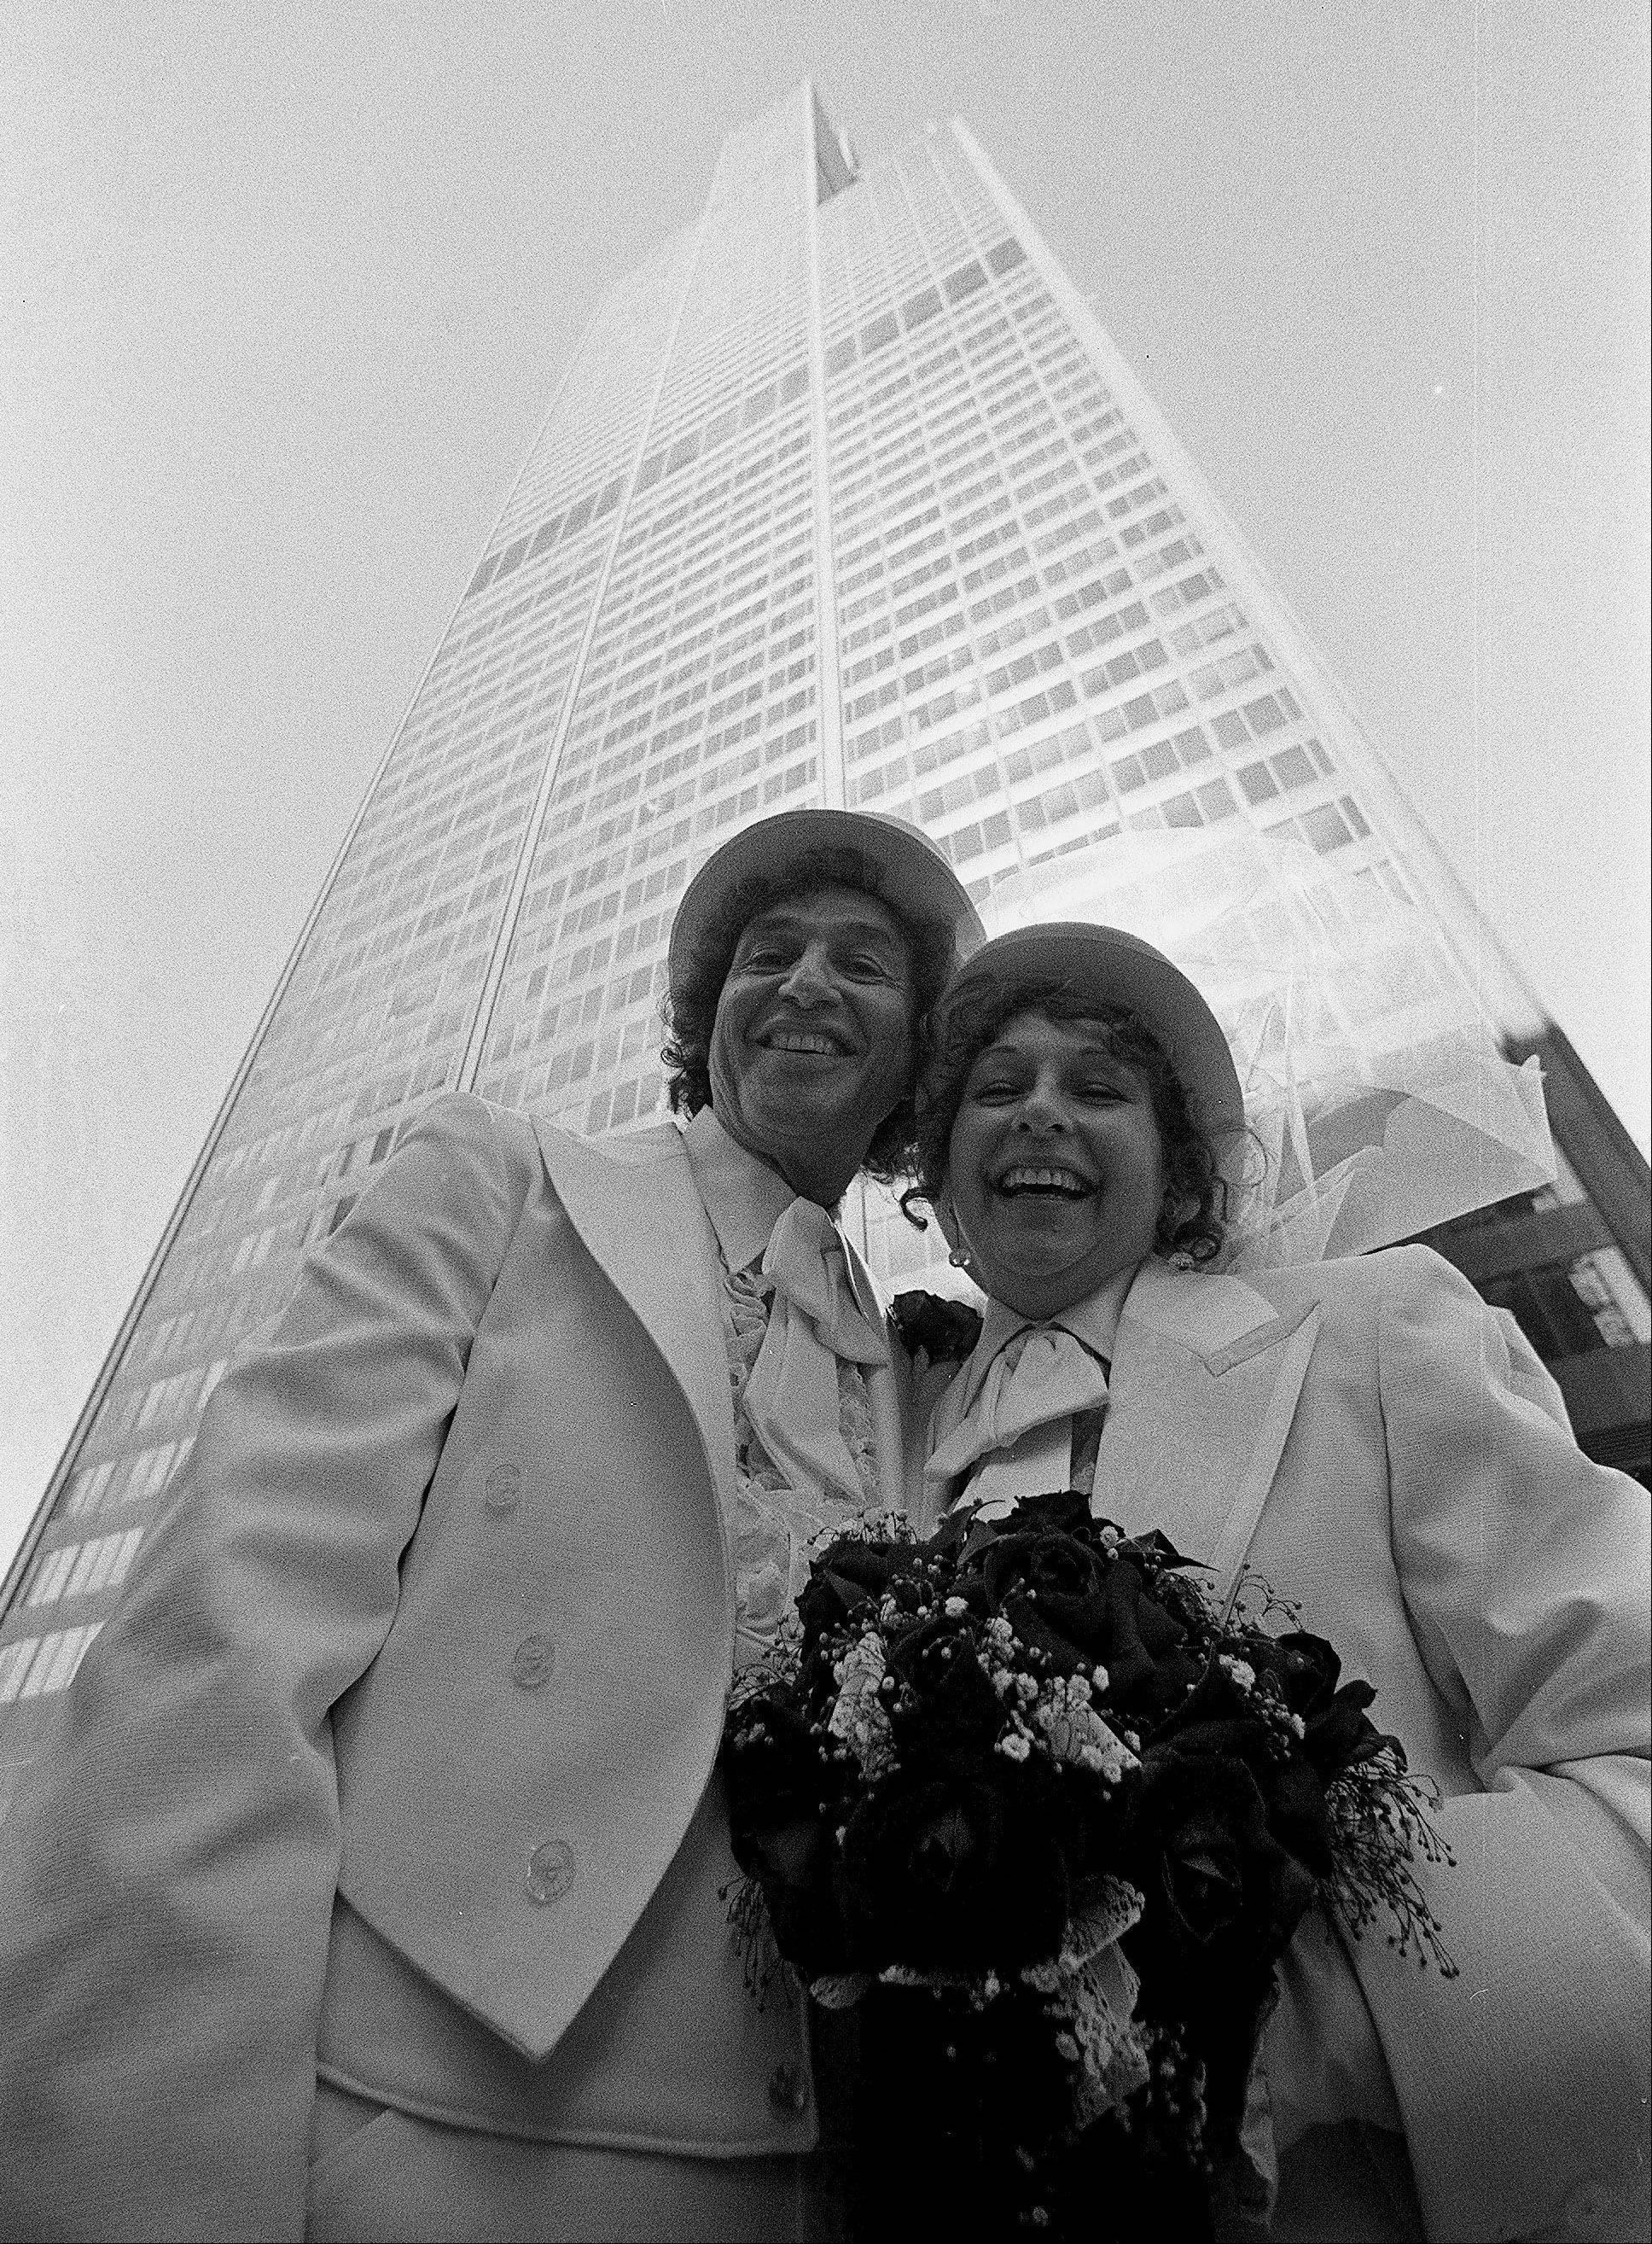 Wearing white for their 1978 wedding on top of the Sears Tower, David and Dee Stoll of Roselle don black tuxes and top hats as they renew their vows from the Skydeck of the Willis Tower.